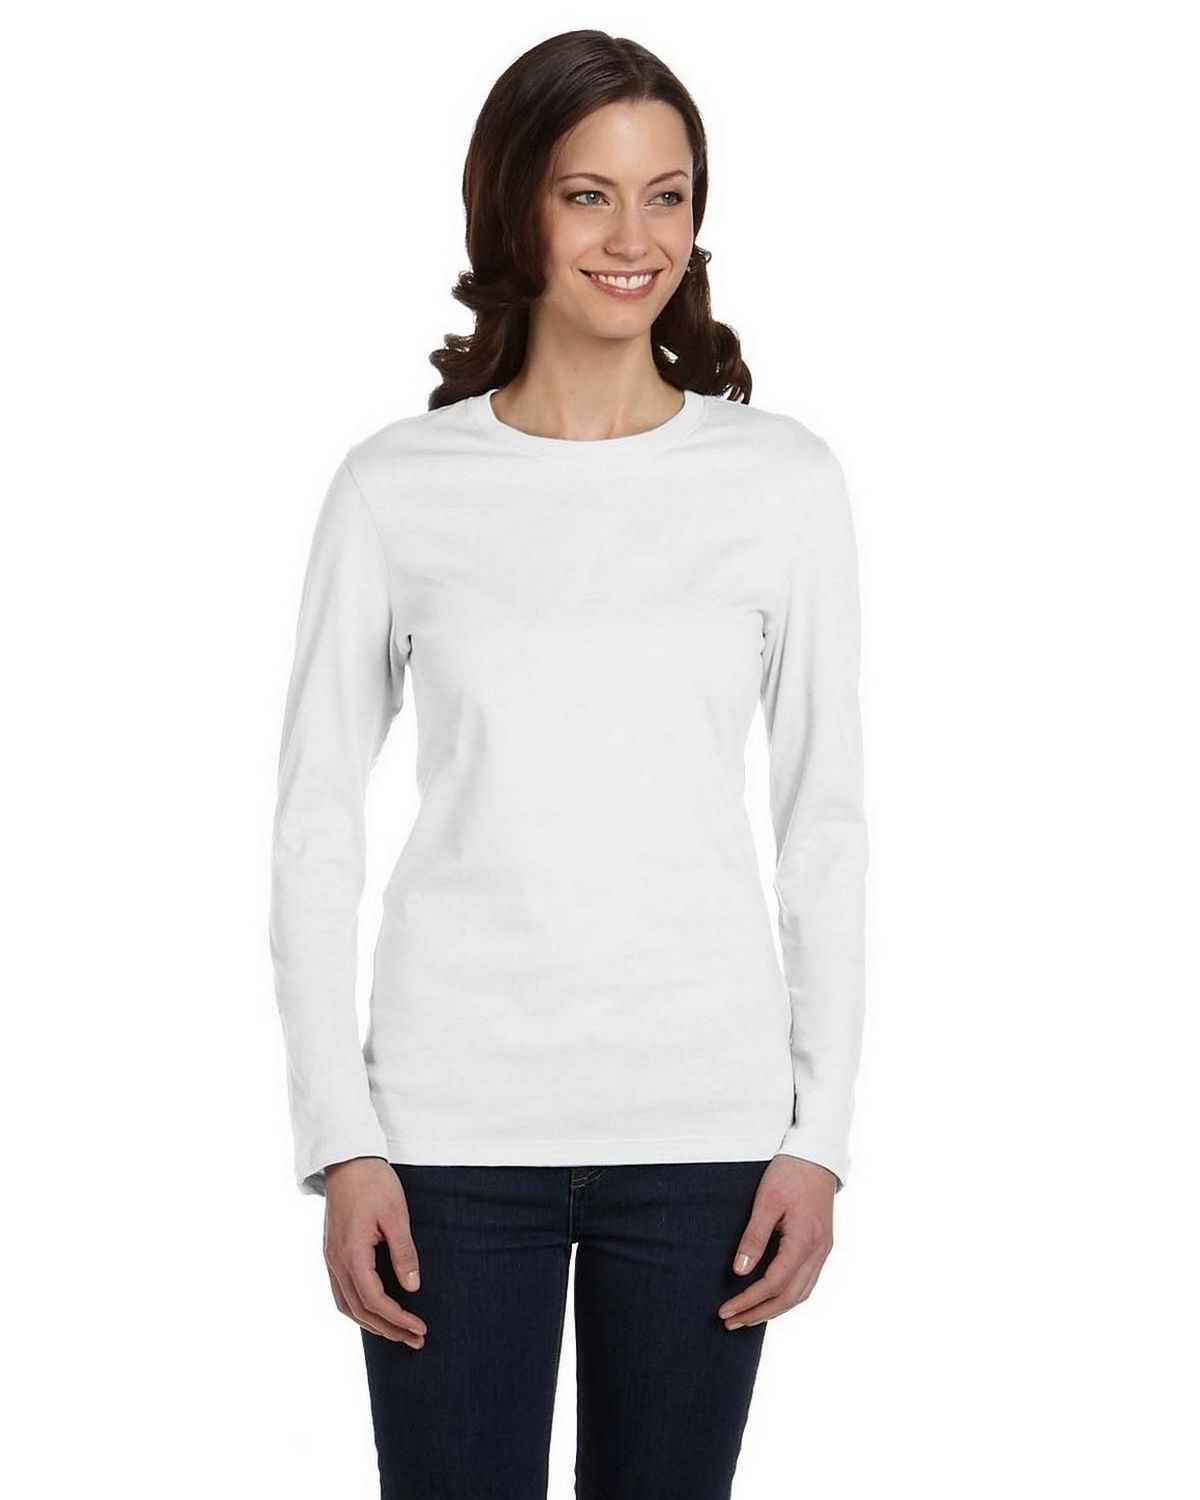 Enjoy the comfortable women's long sleeve shirts, women's t shirts and tee shirts by Columbia Sportswear®.